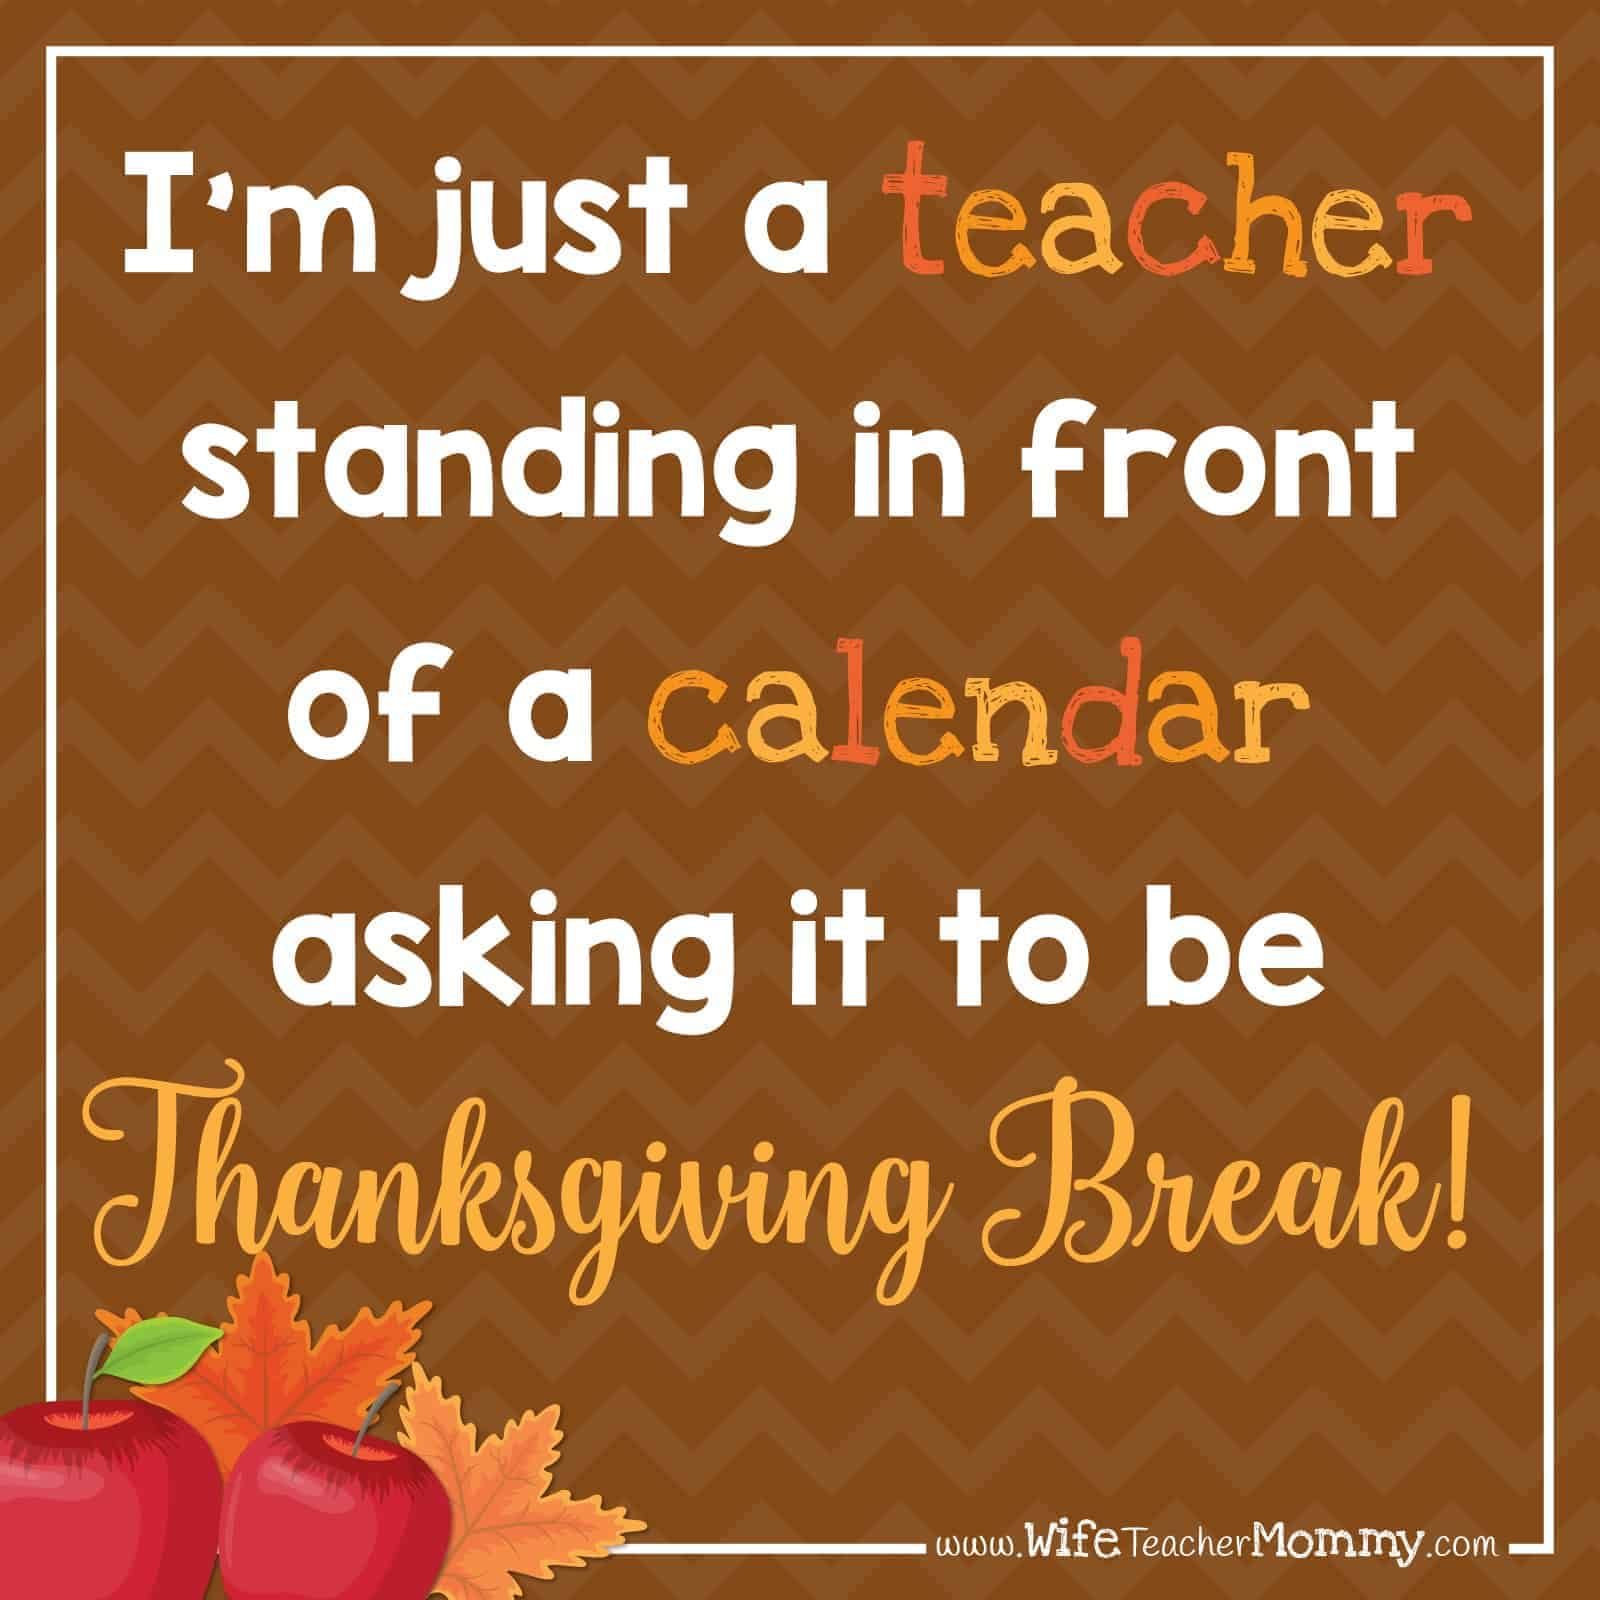 I'm just a teacher standing in front of a calendar asking it to be Thanksgiving Break